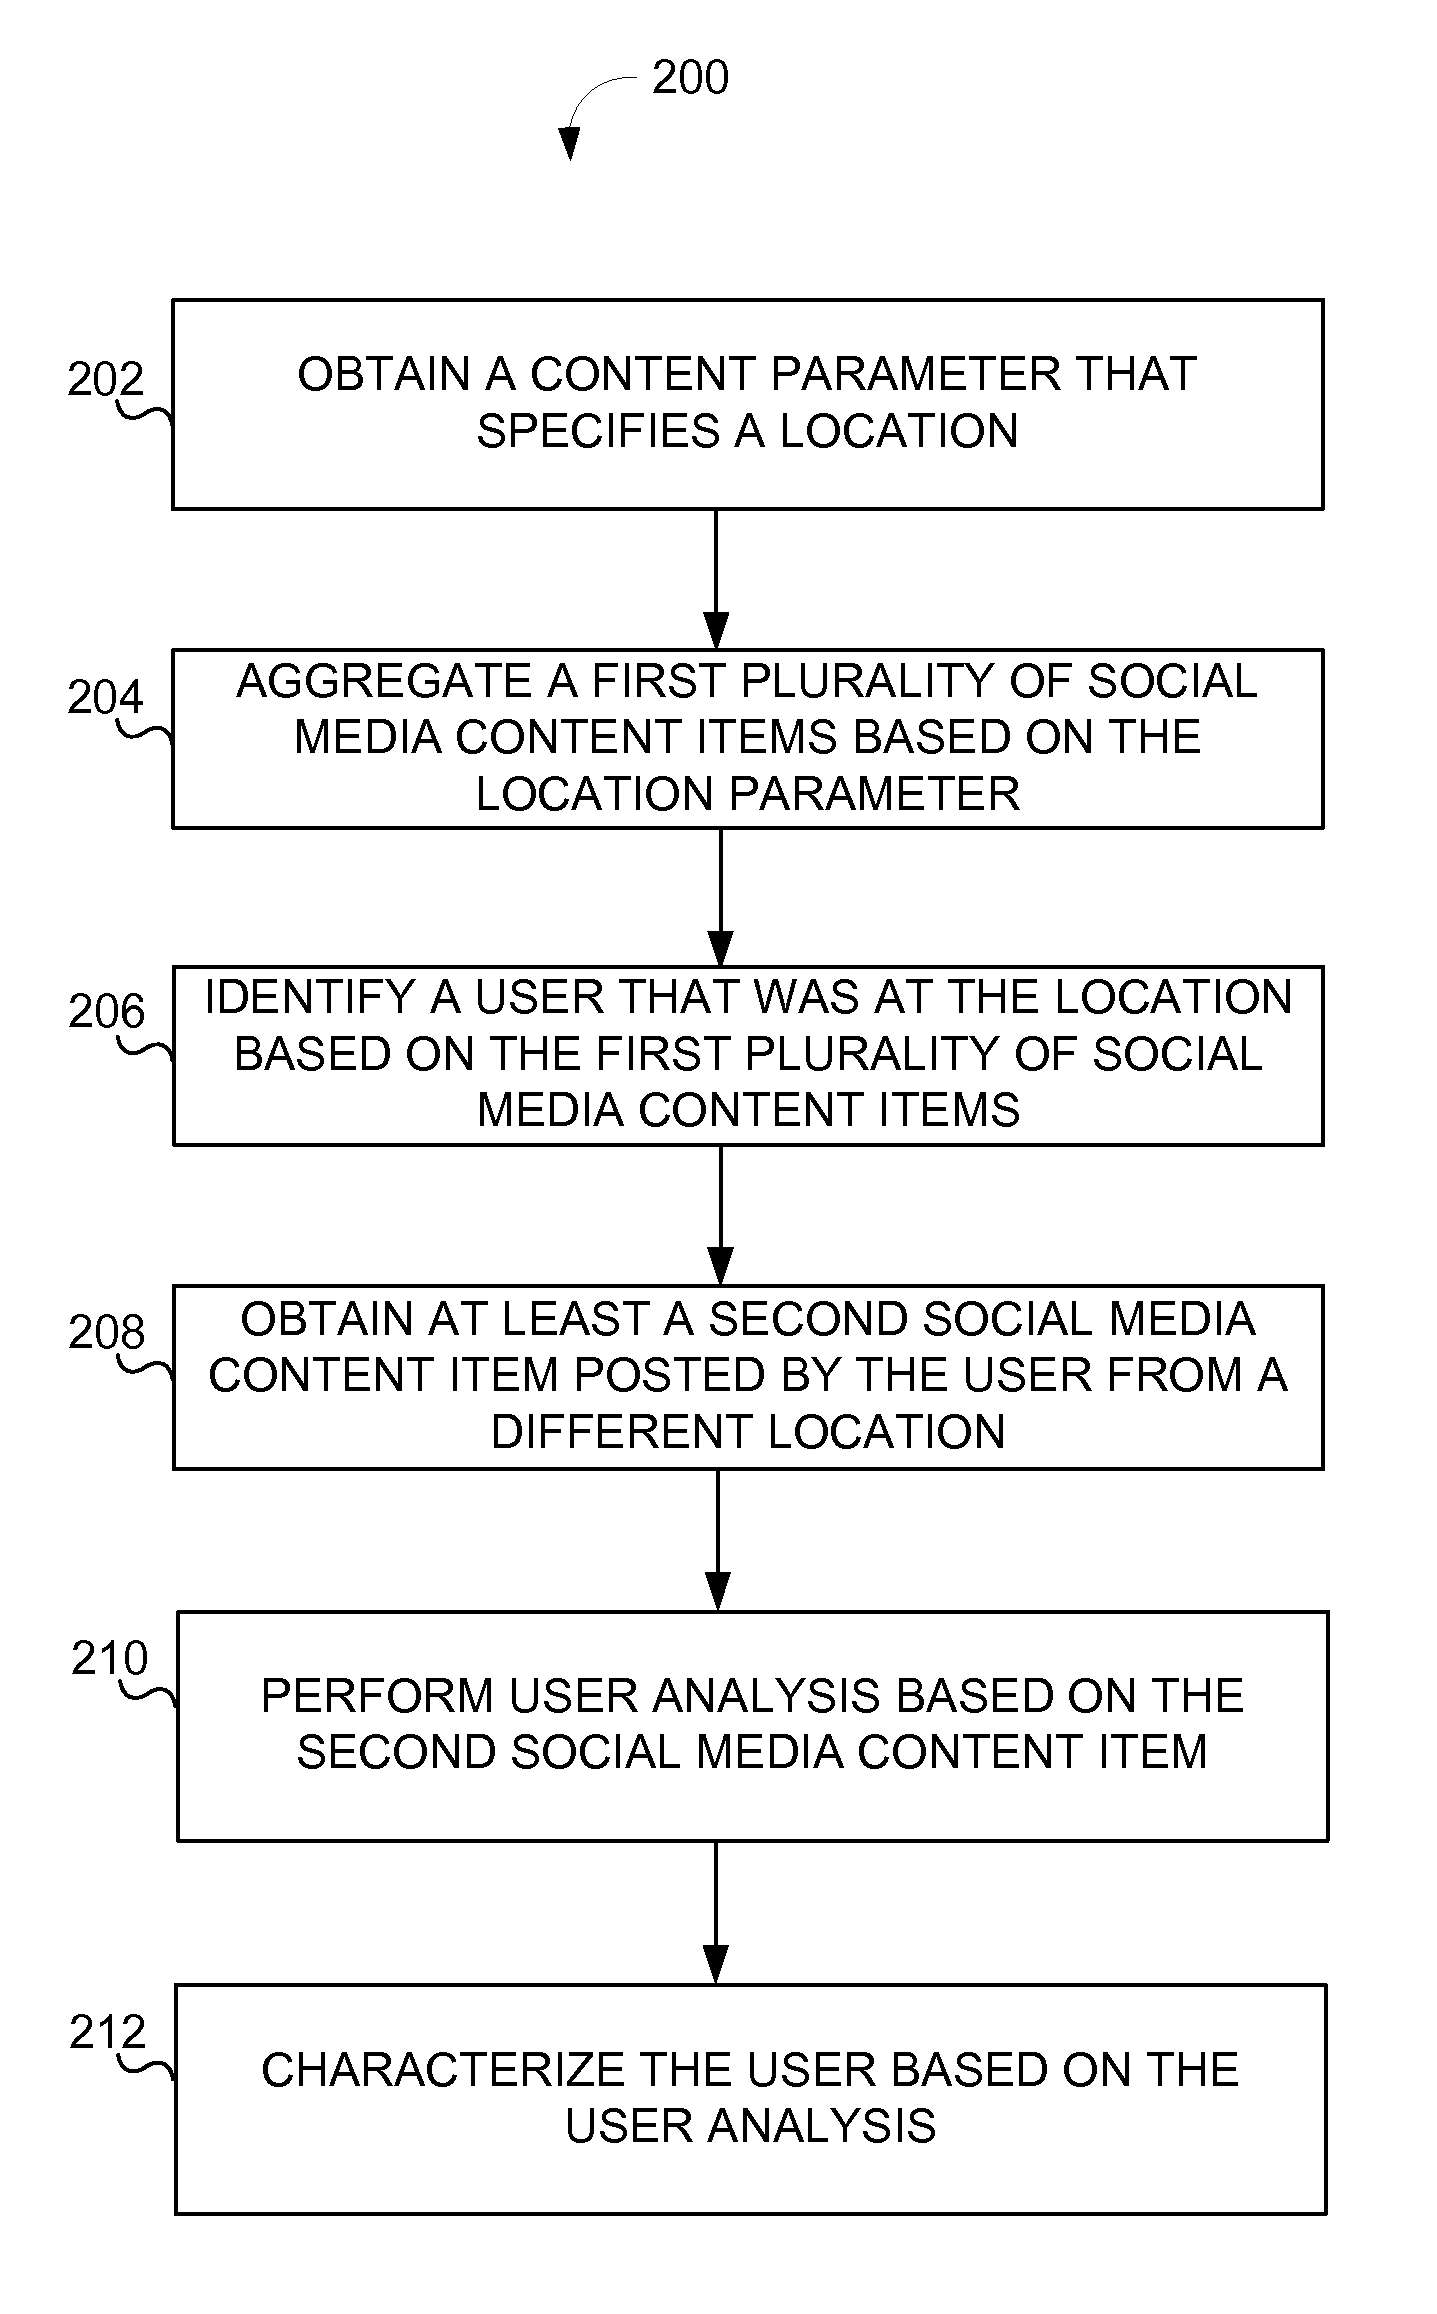 System and method for identifying influential social media and providing location-based alerts  - US-9485318-B1